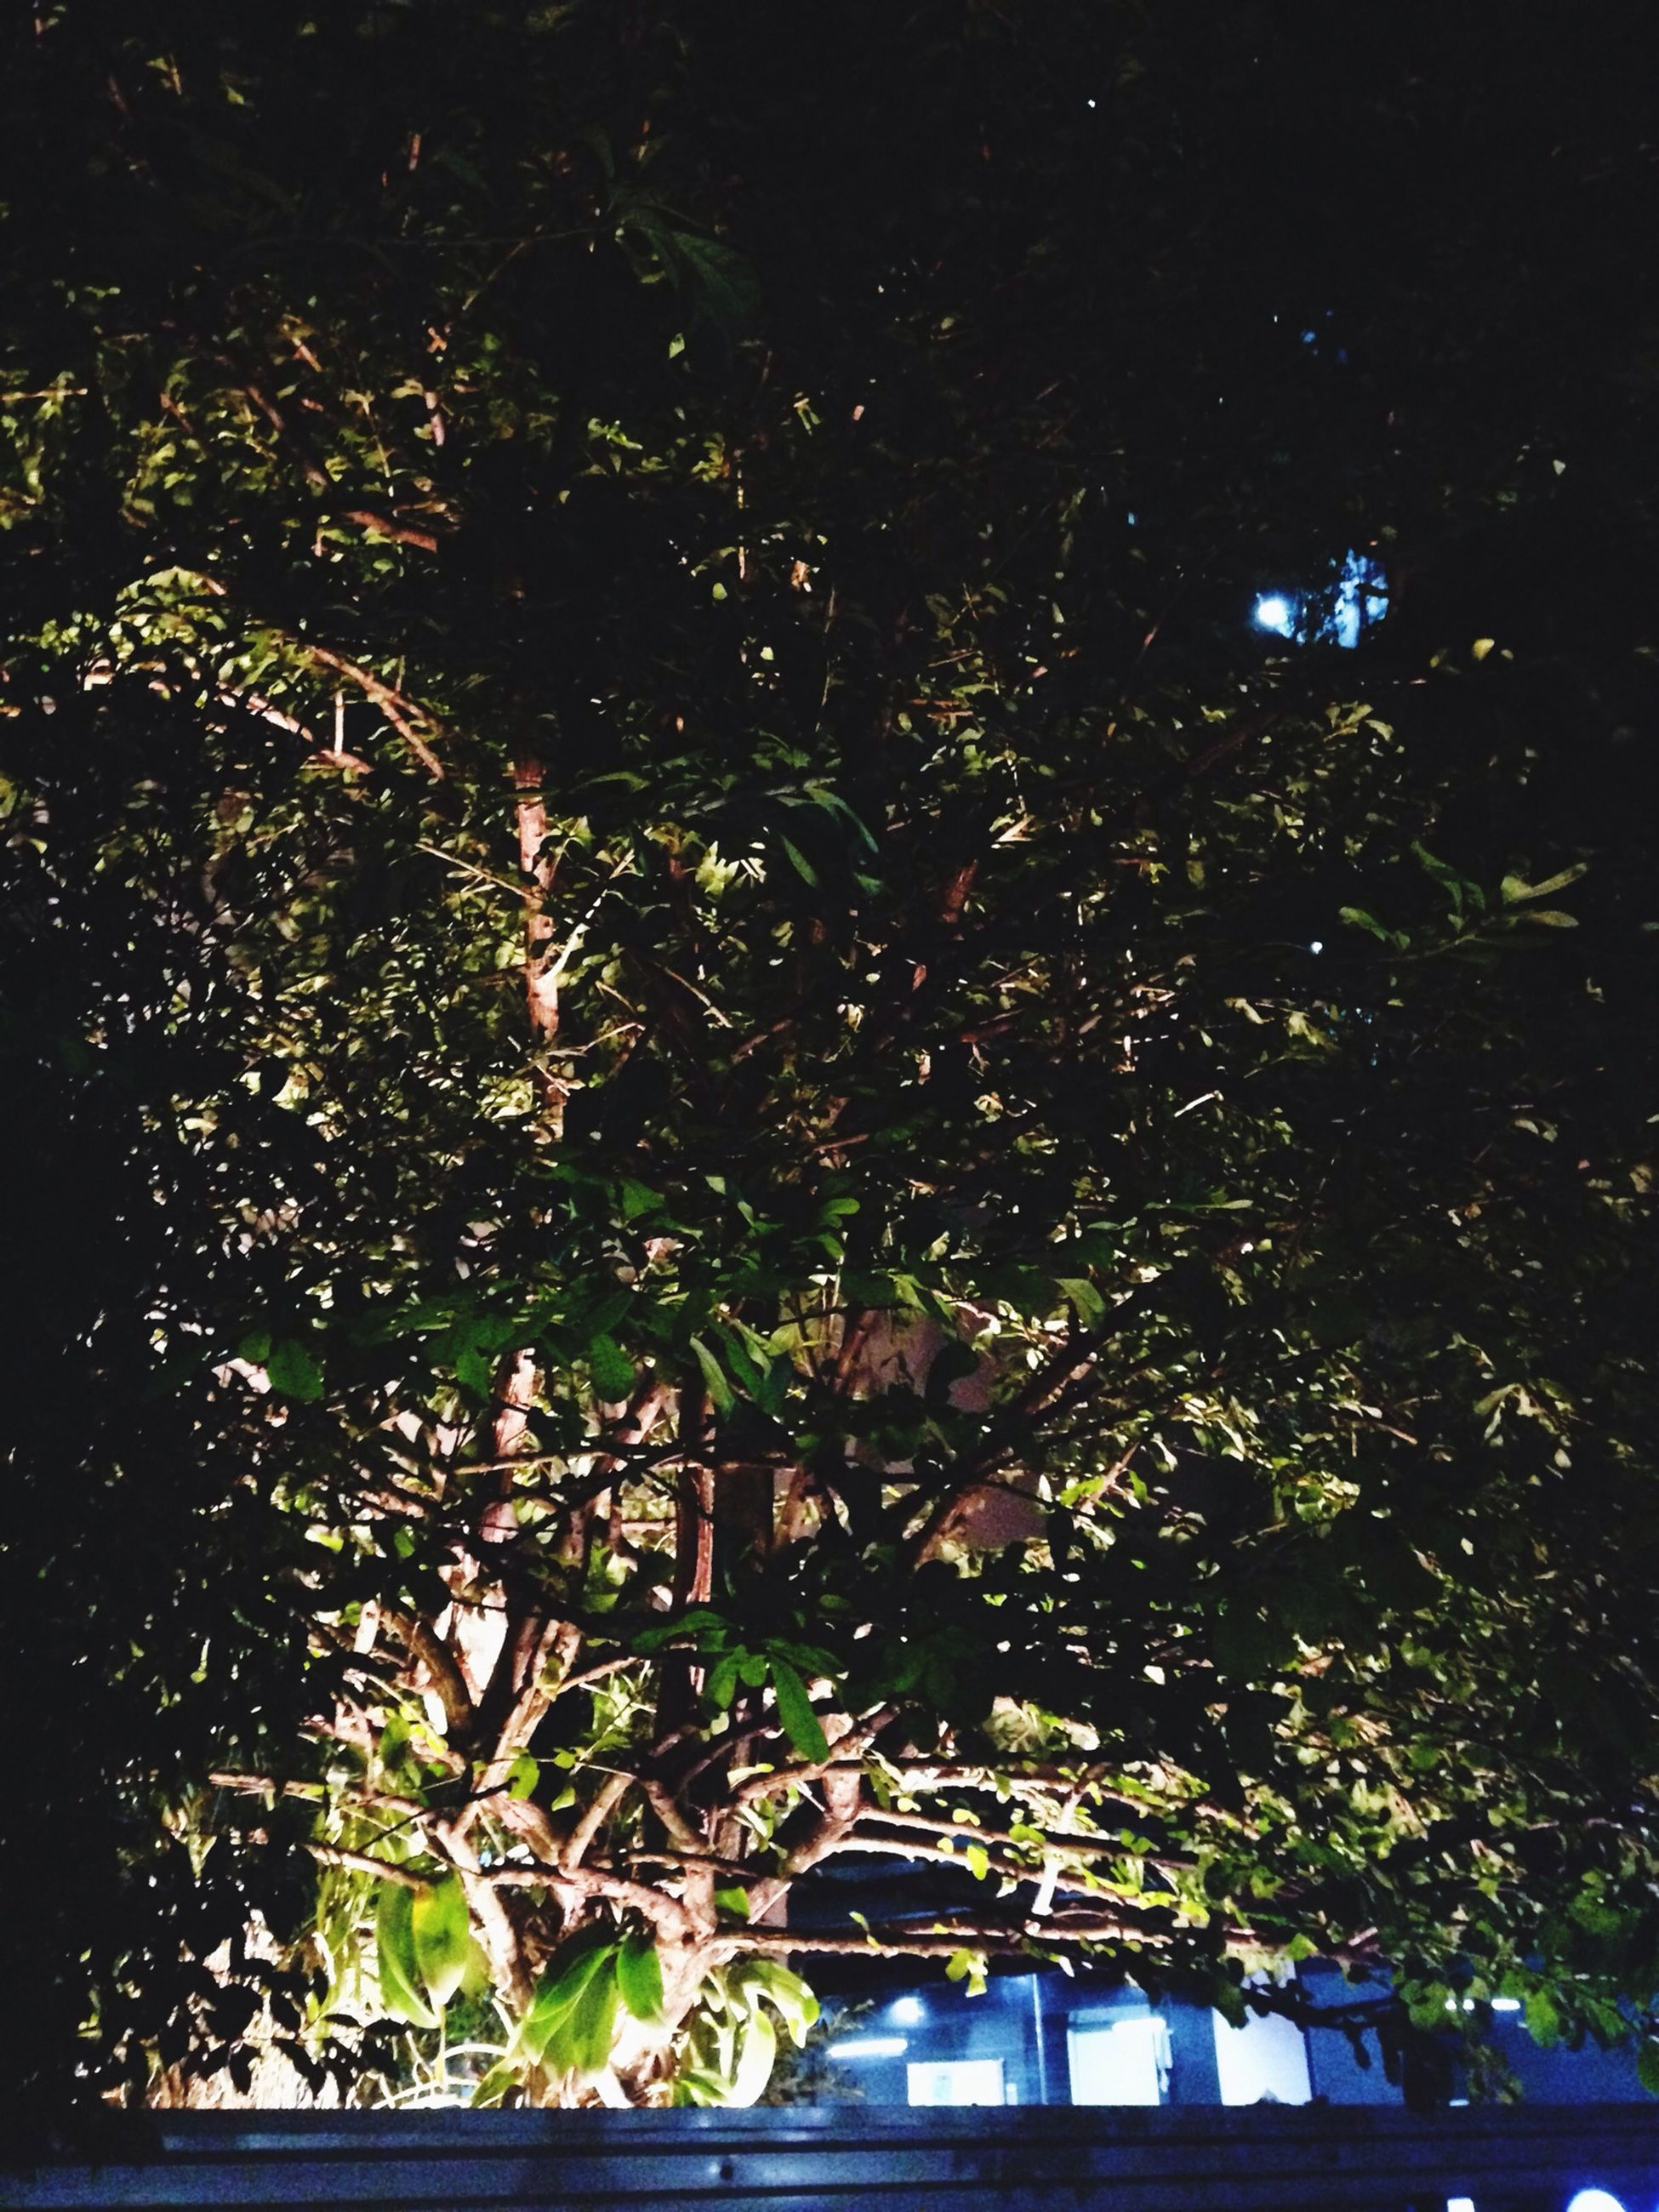 tree, night, low angle view, growth, branch, built structure, illuminated, architecture, building exterior, nature, outdoors, no people, street light, leaf, sky, clear sky, plant, lighting equipment, city, sunlight